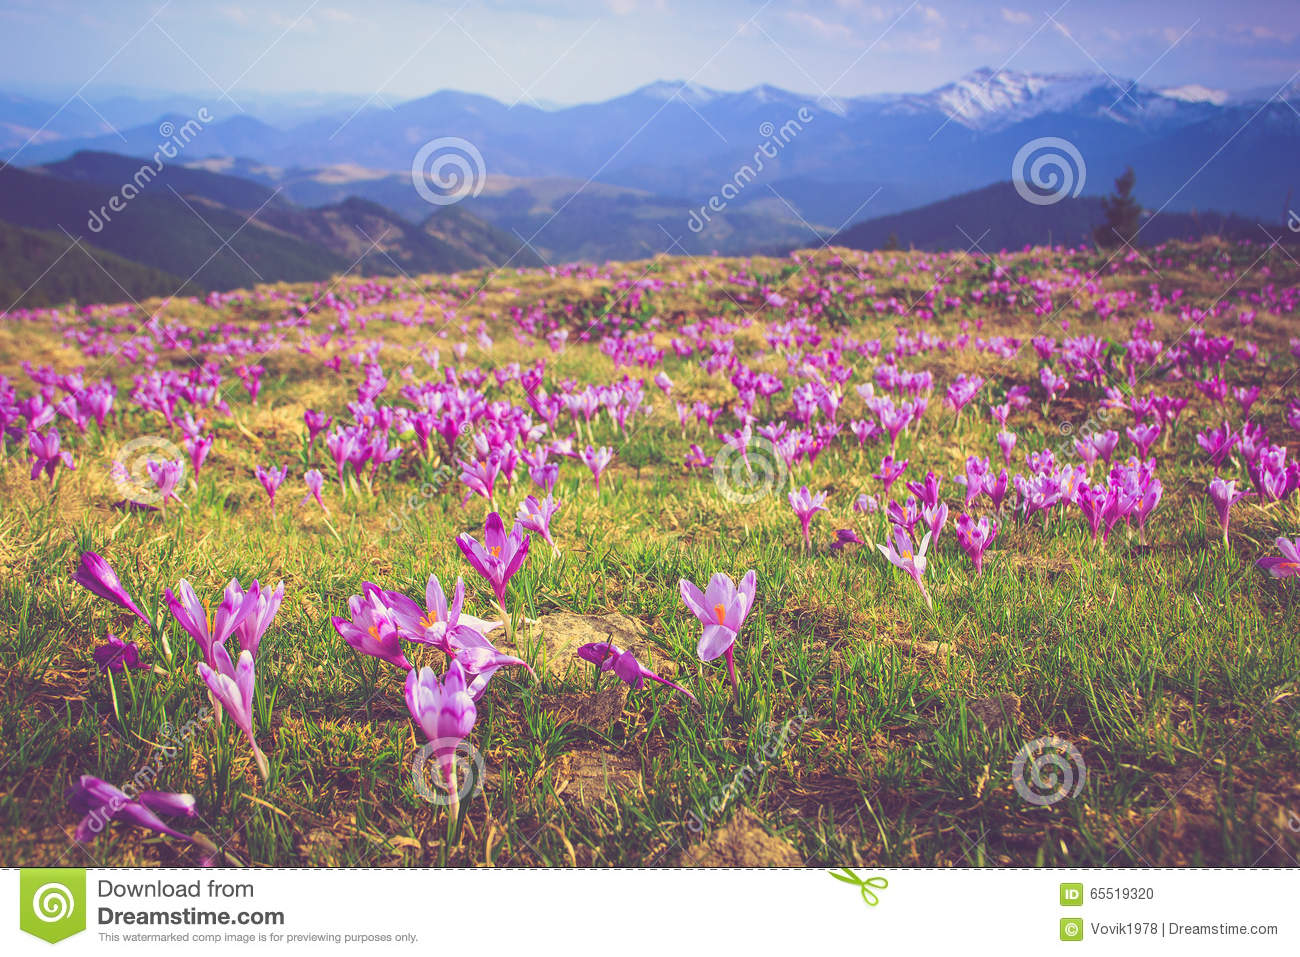 Field of first blooming spring flowers crocus as soon as snow descends on the background of mountains in sunlight.